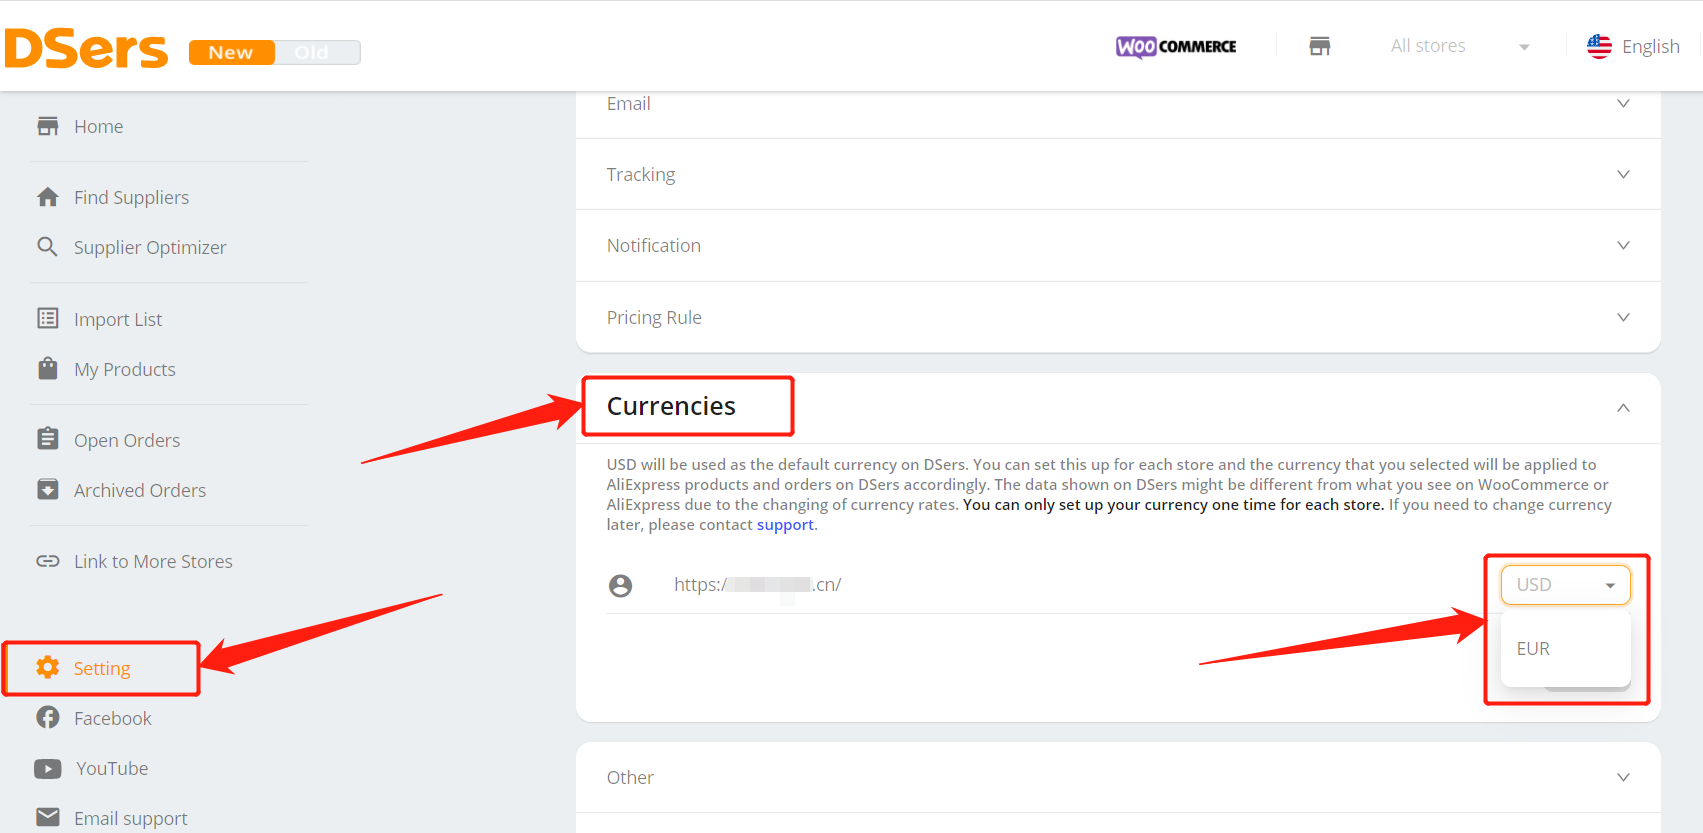 Change and set currency on Woo DSers - Report setting - Woo DSers